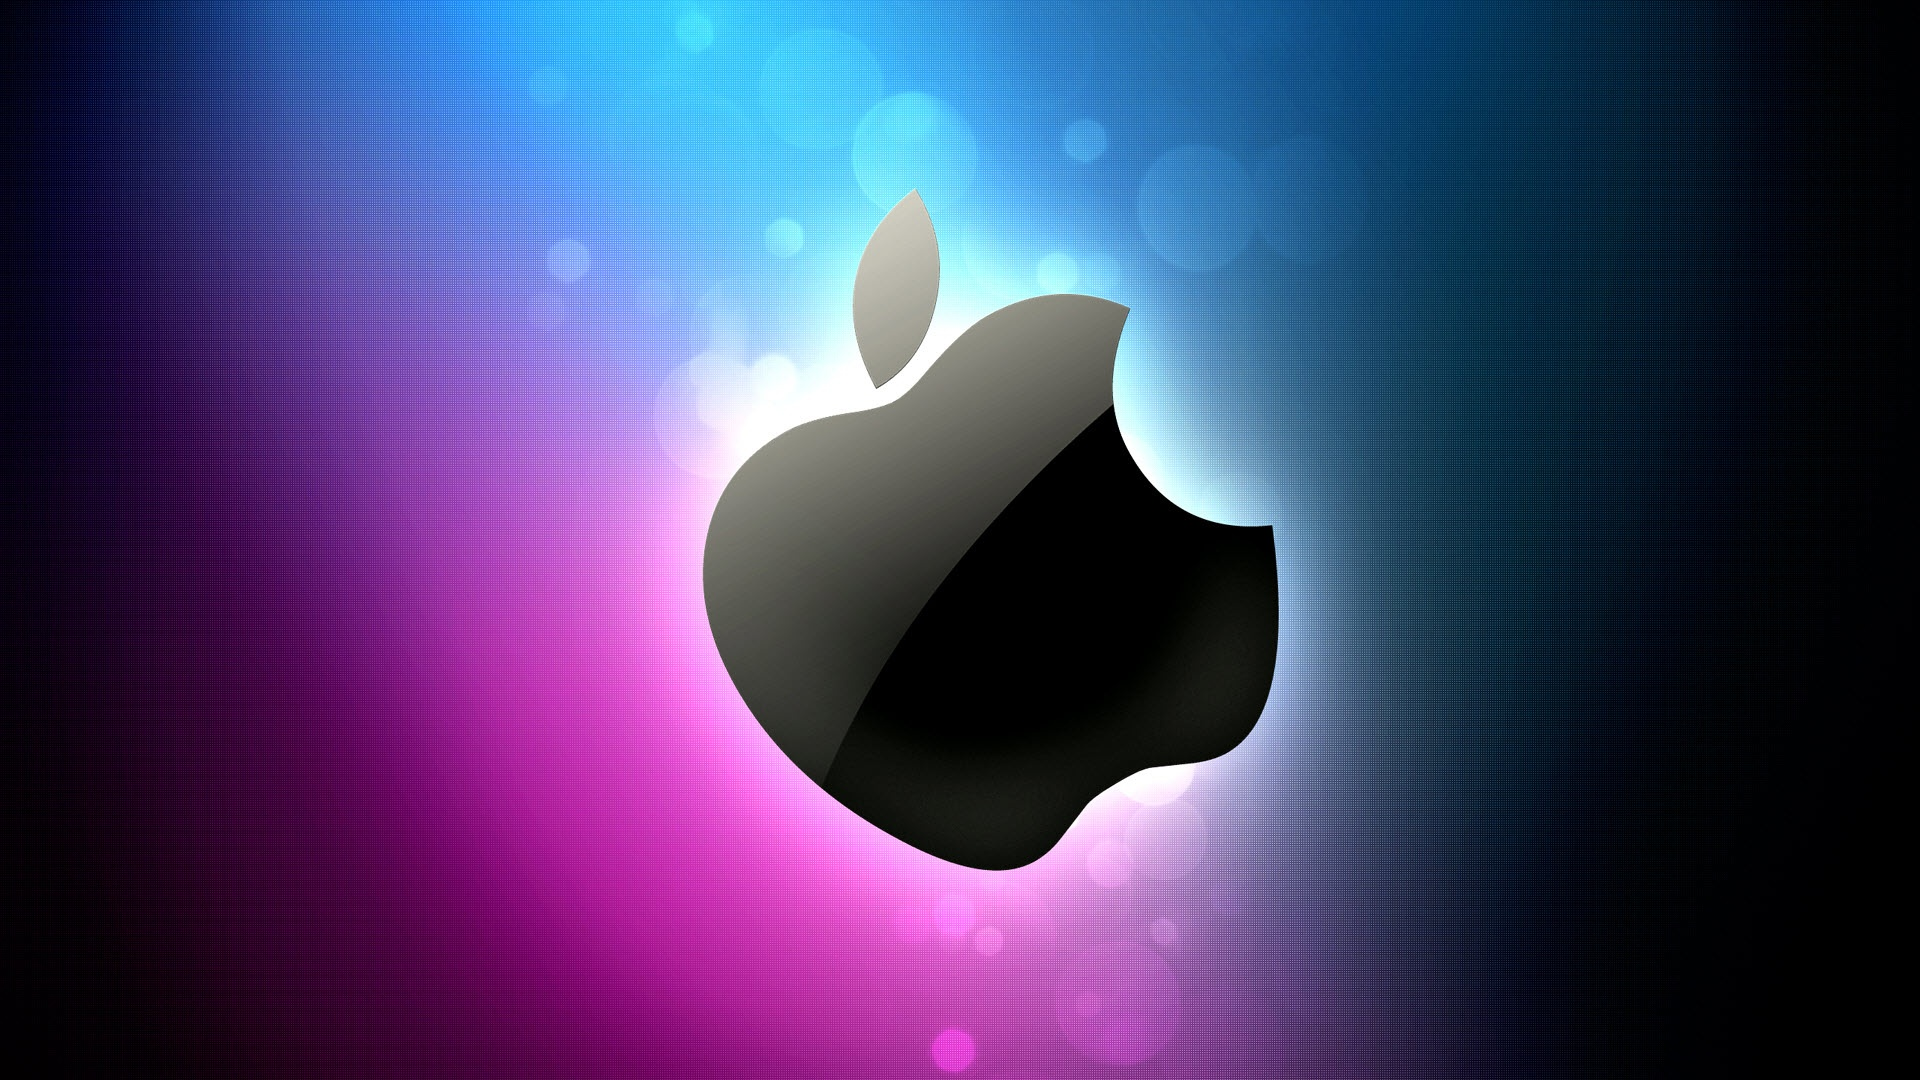 Colorful HD Apple